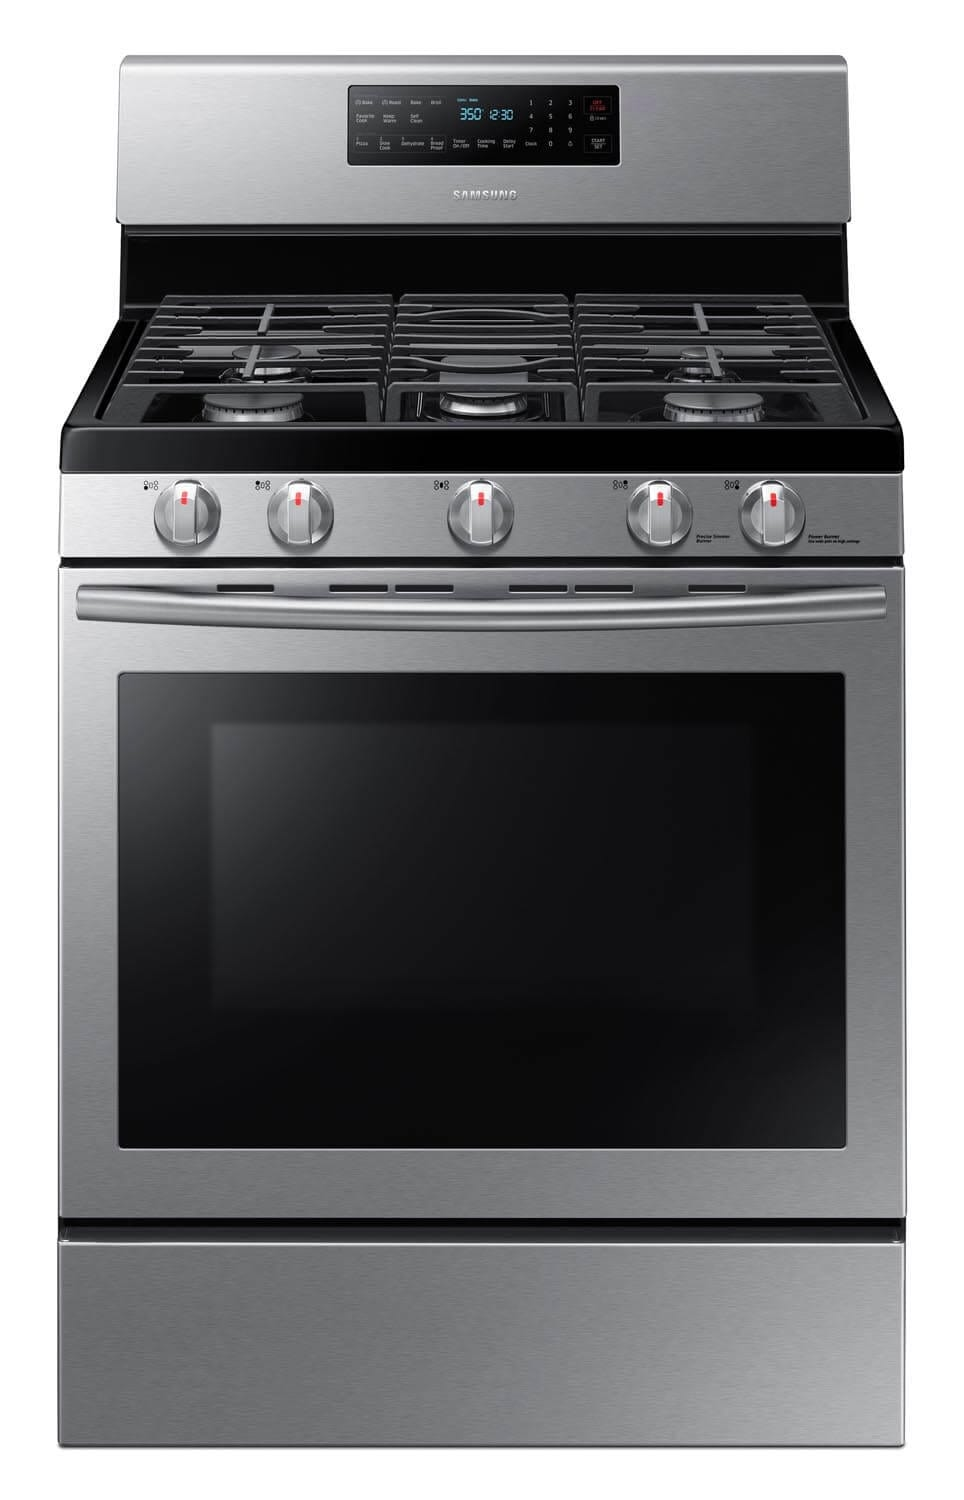 Cooking Products - Samsung Stainless Steel Freestanding Gas Range (5.8 Cu. Ft.) - NX58H5600SS